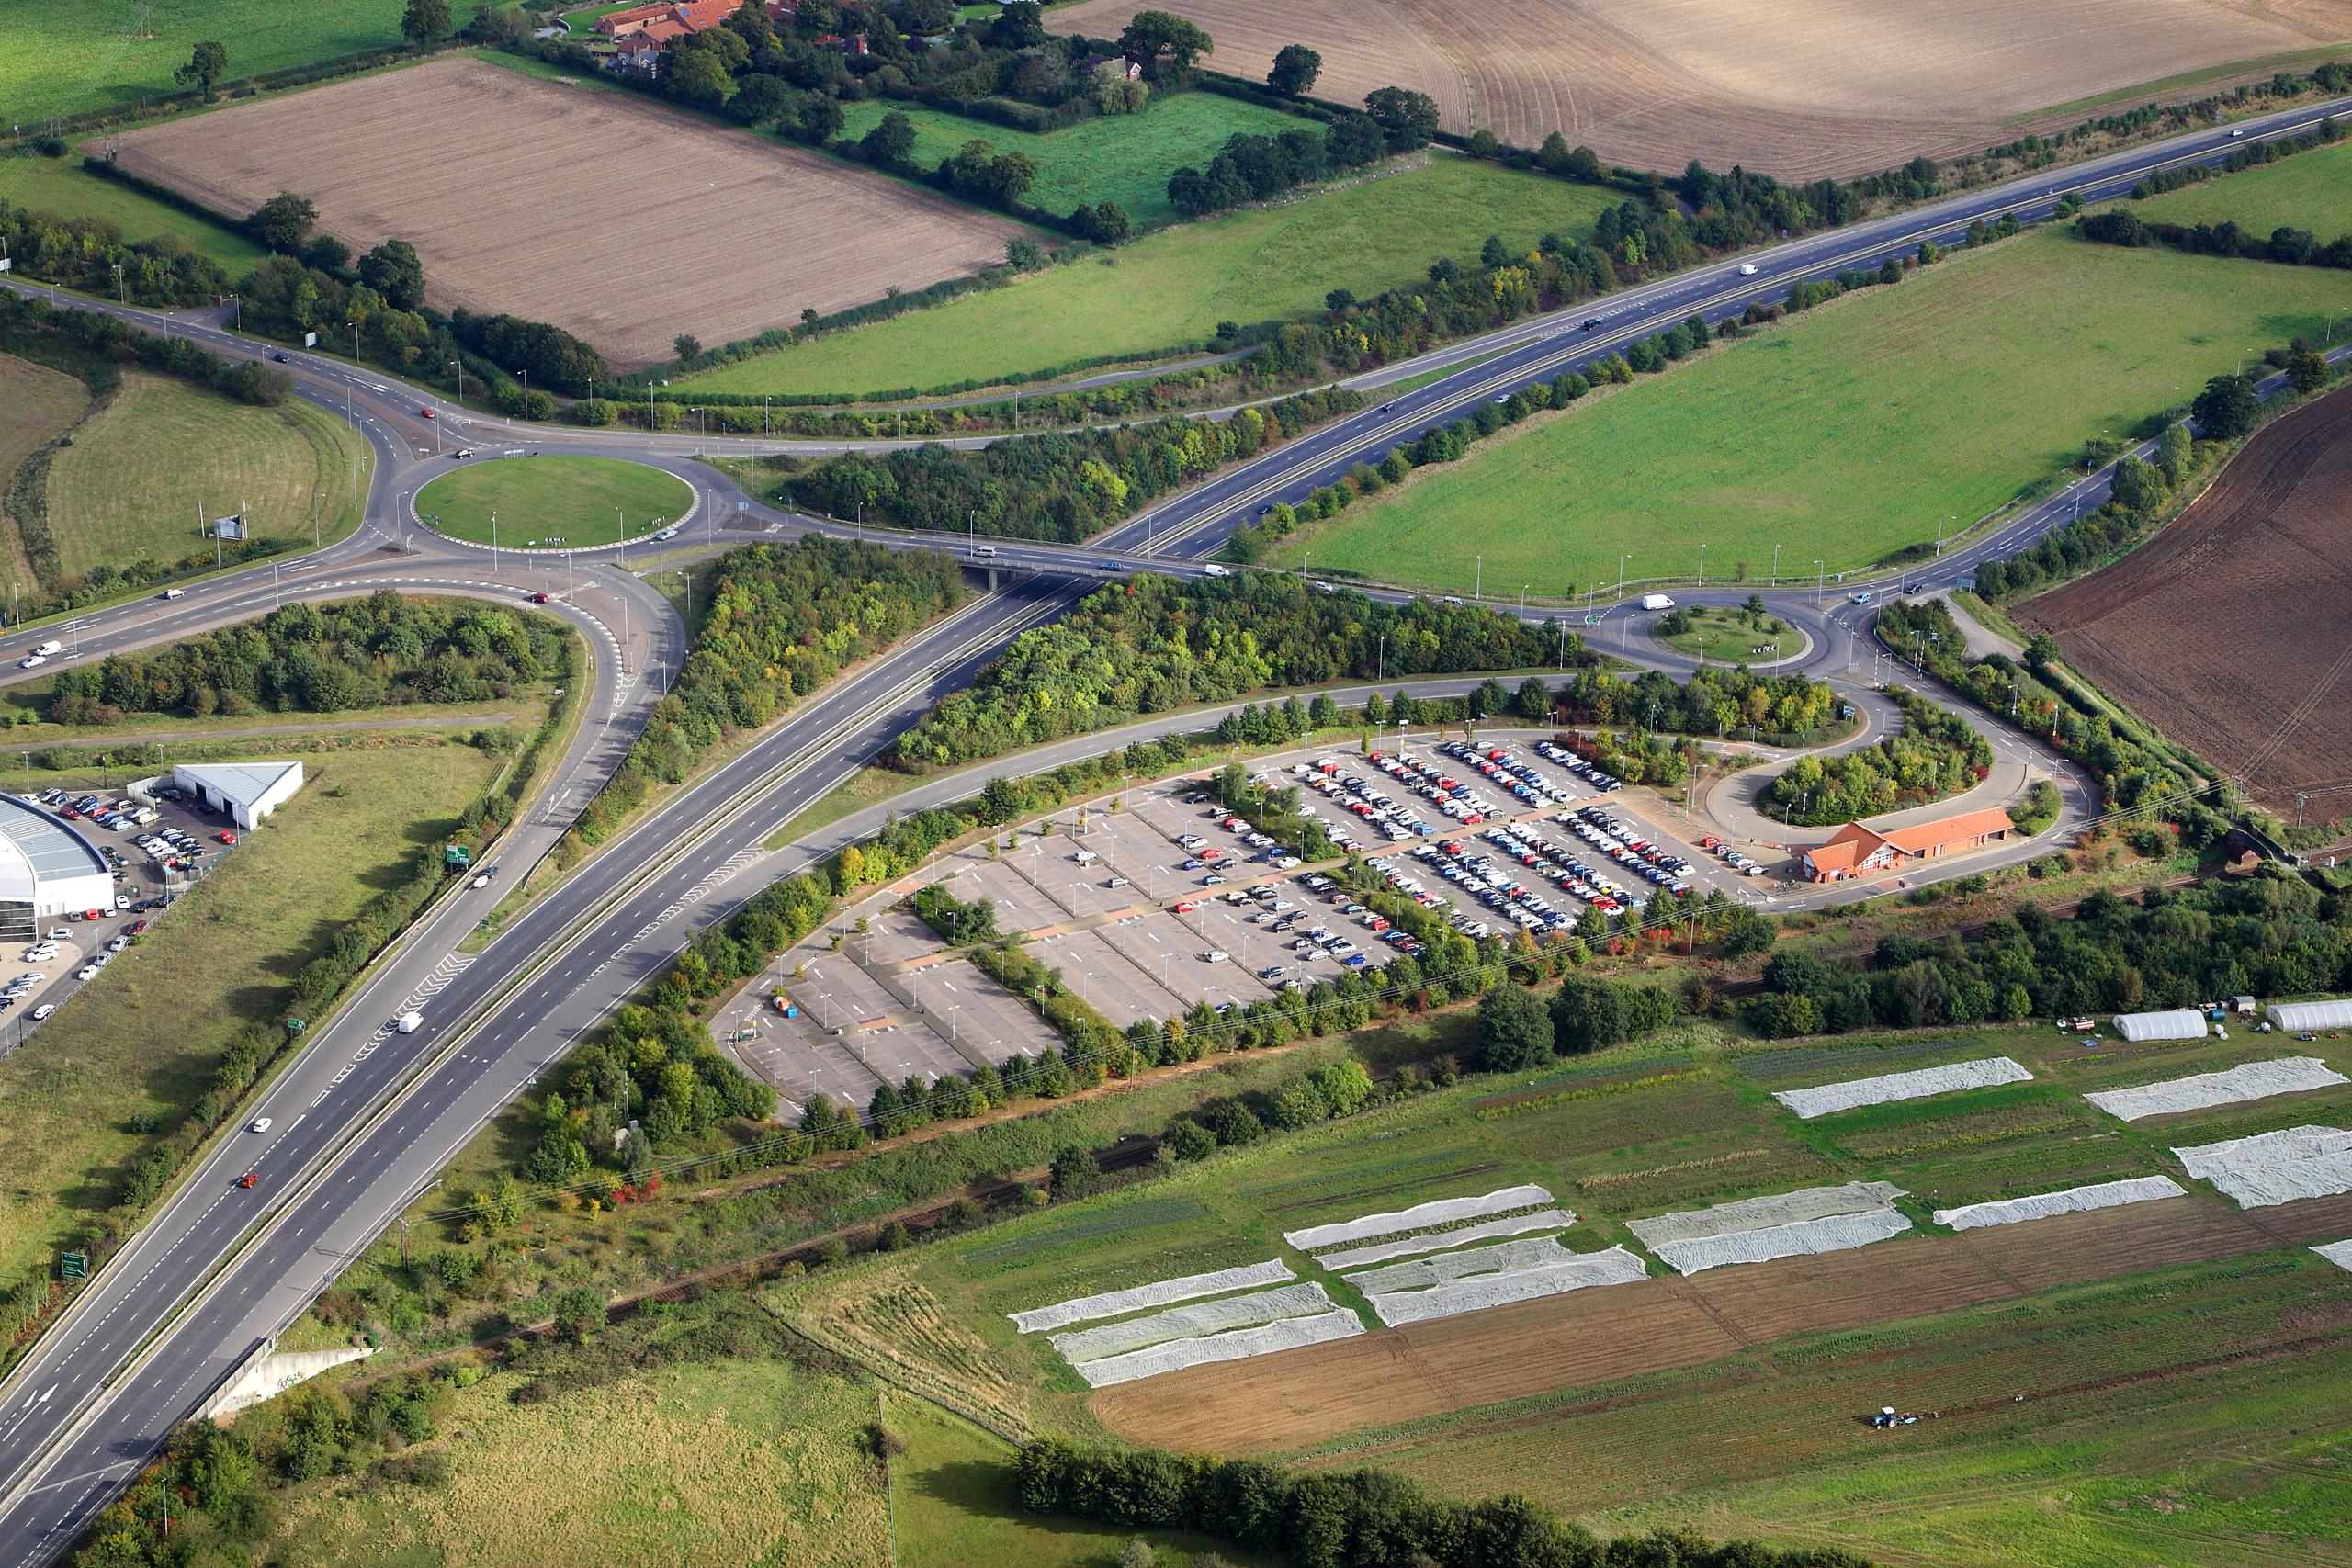 aerial view of a section of the A47